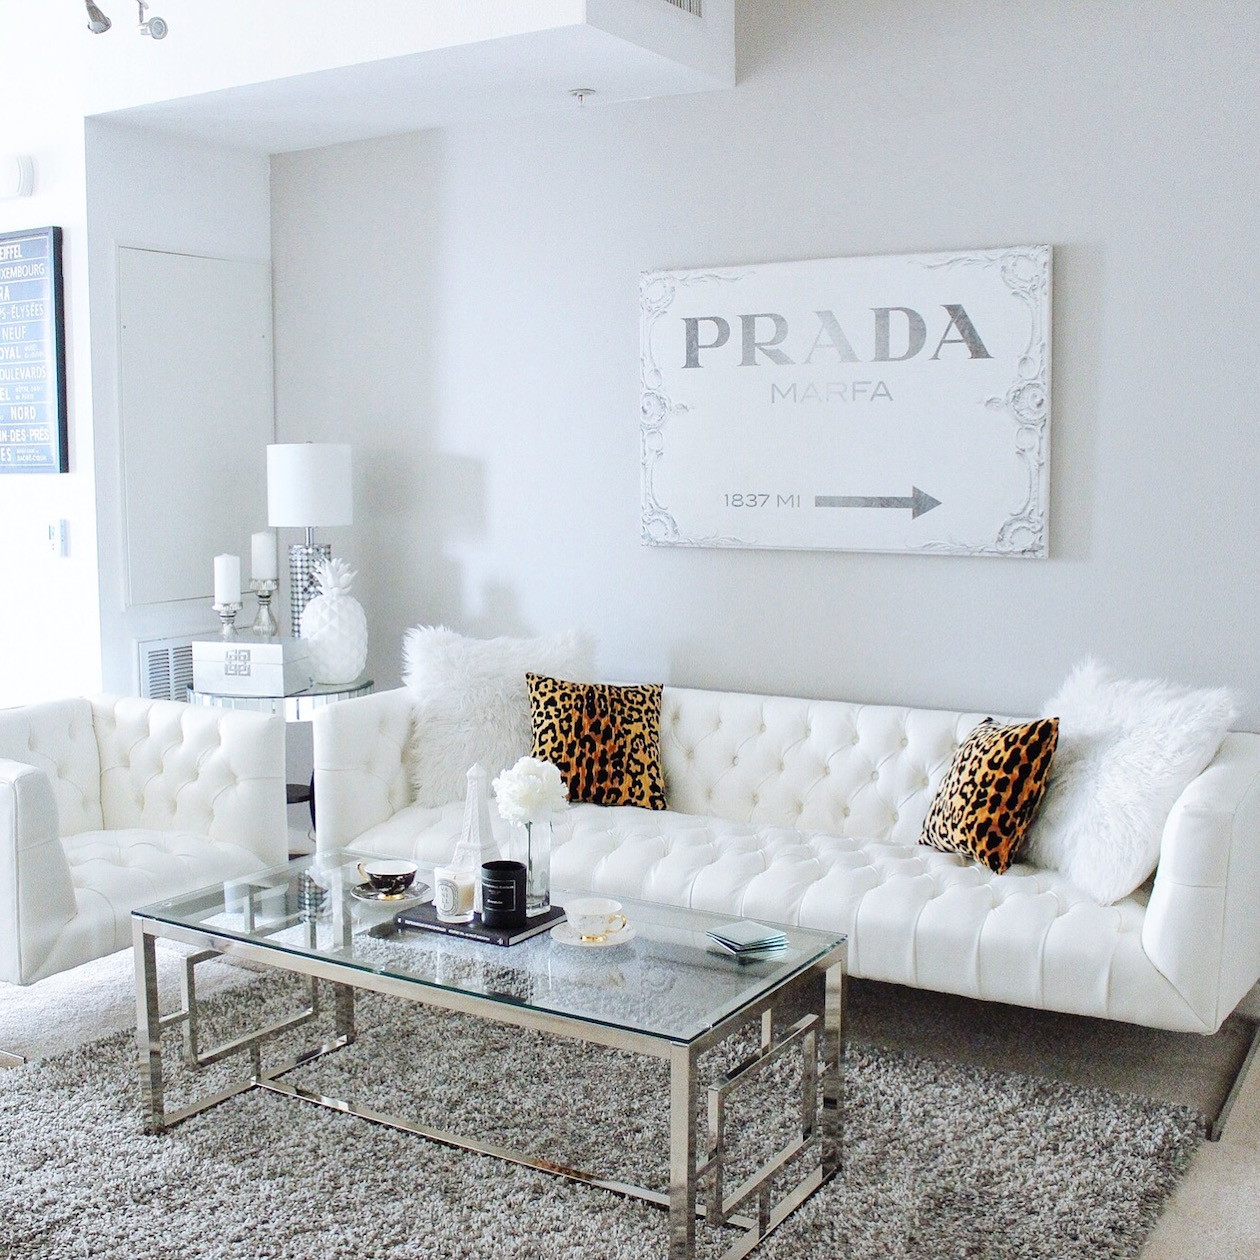 99 Beautiful White And Grey Living Room Interior: Instagram Diaries 004